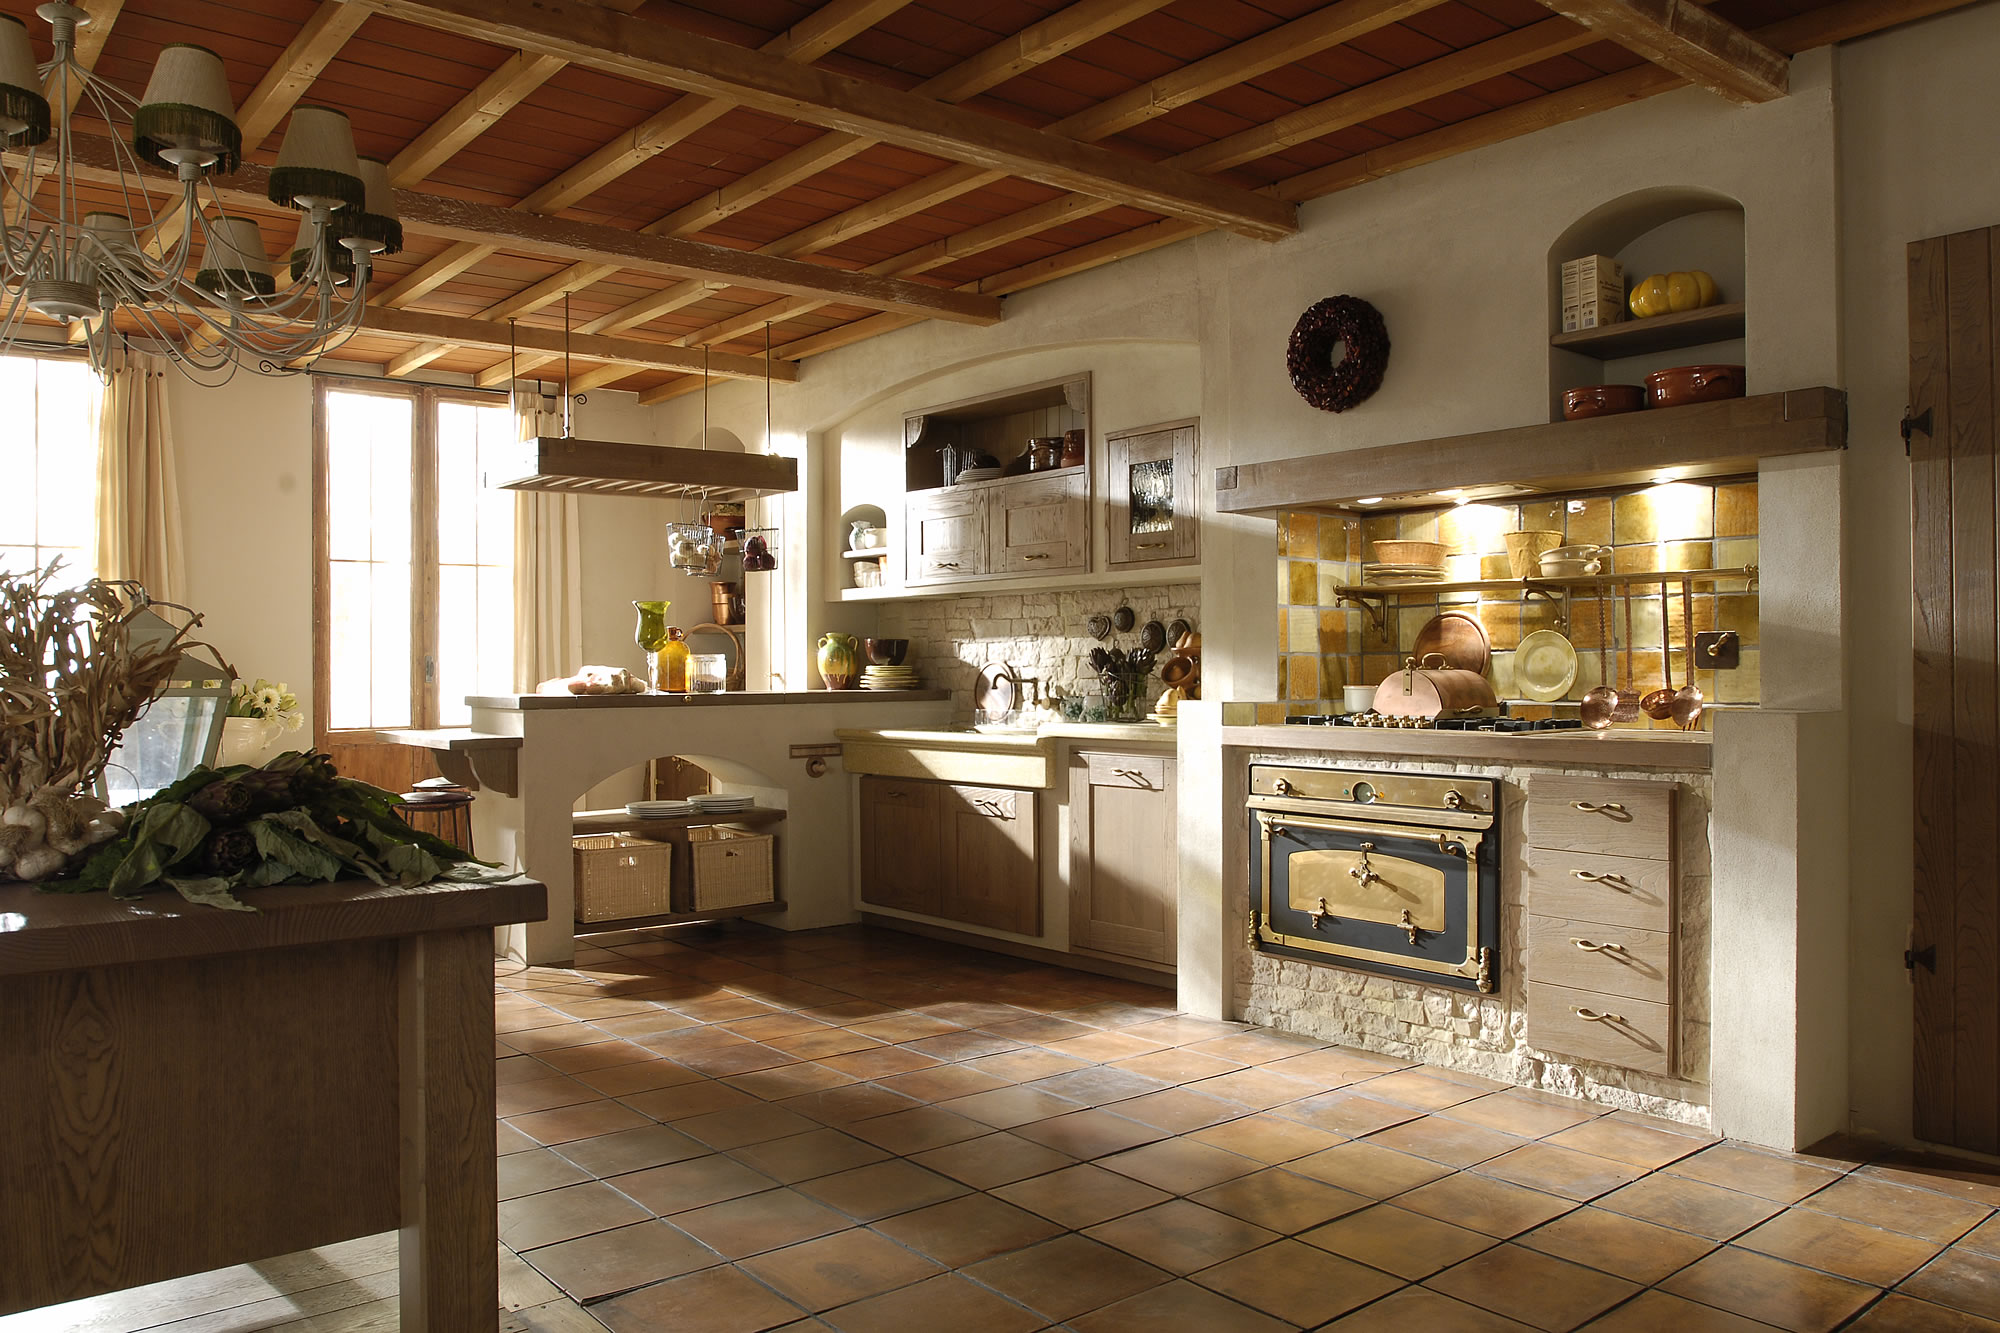 Piastrelle Stile Provenzale Italian Country Chic Kitchens Modular Elegant Kitchens